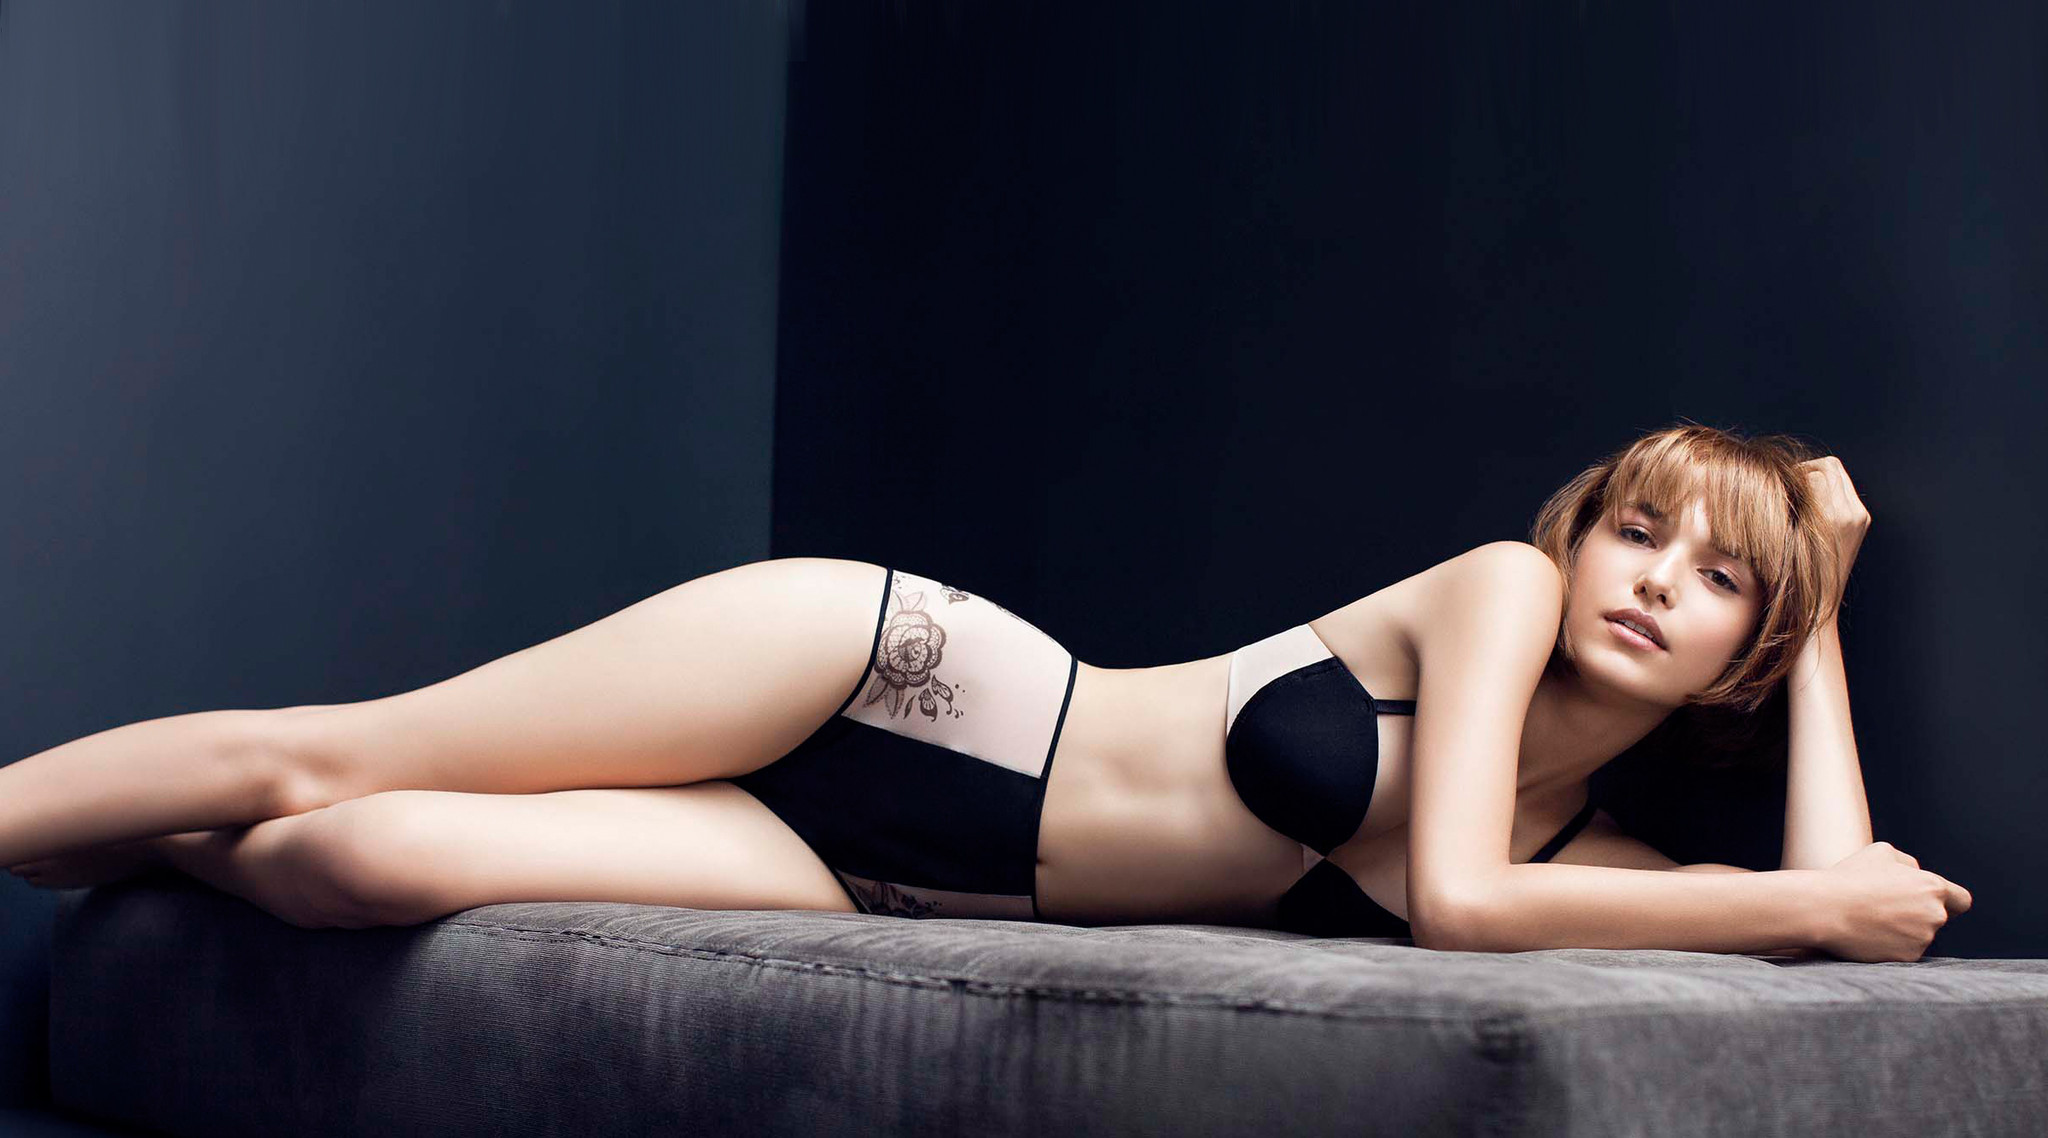 Naja Lingerie: Beautiful, Ethical, Affordable Bras and Panties